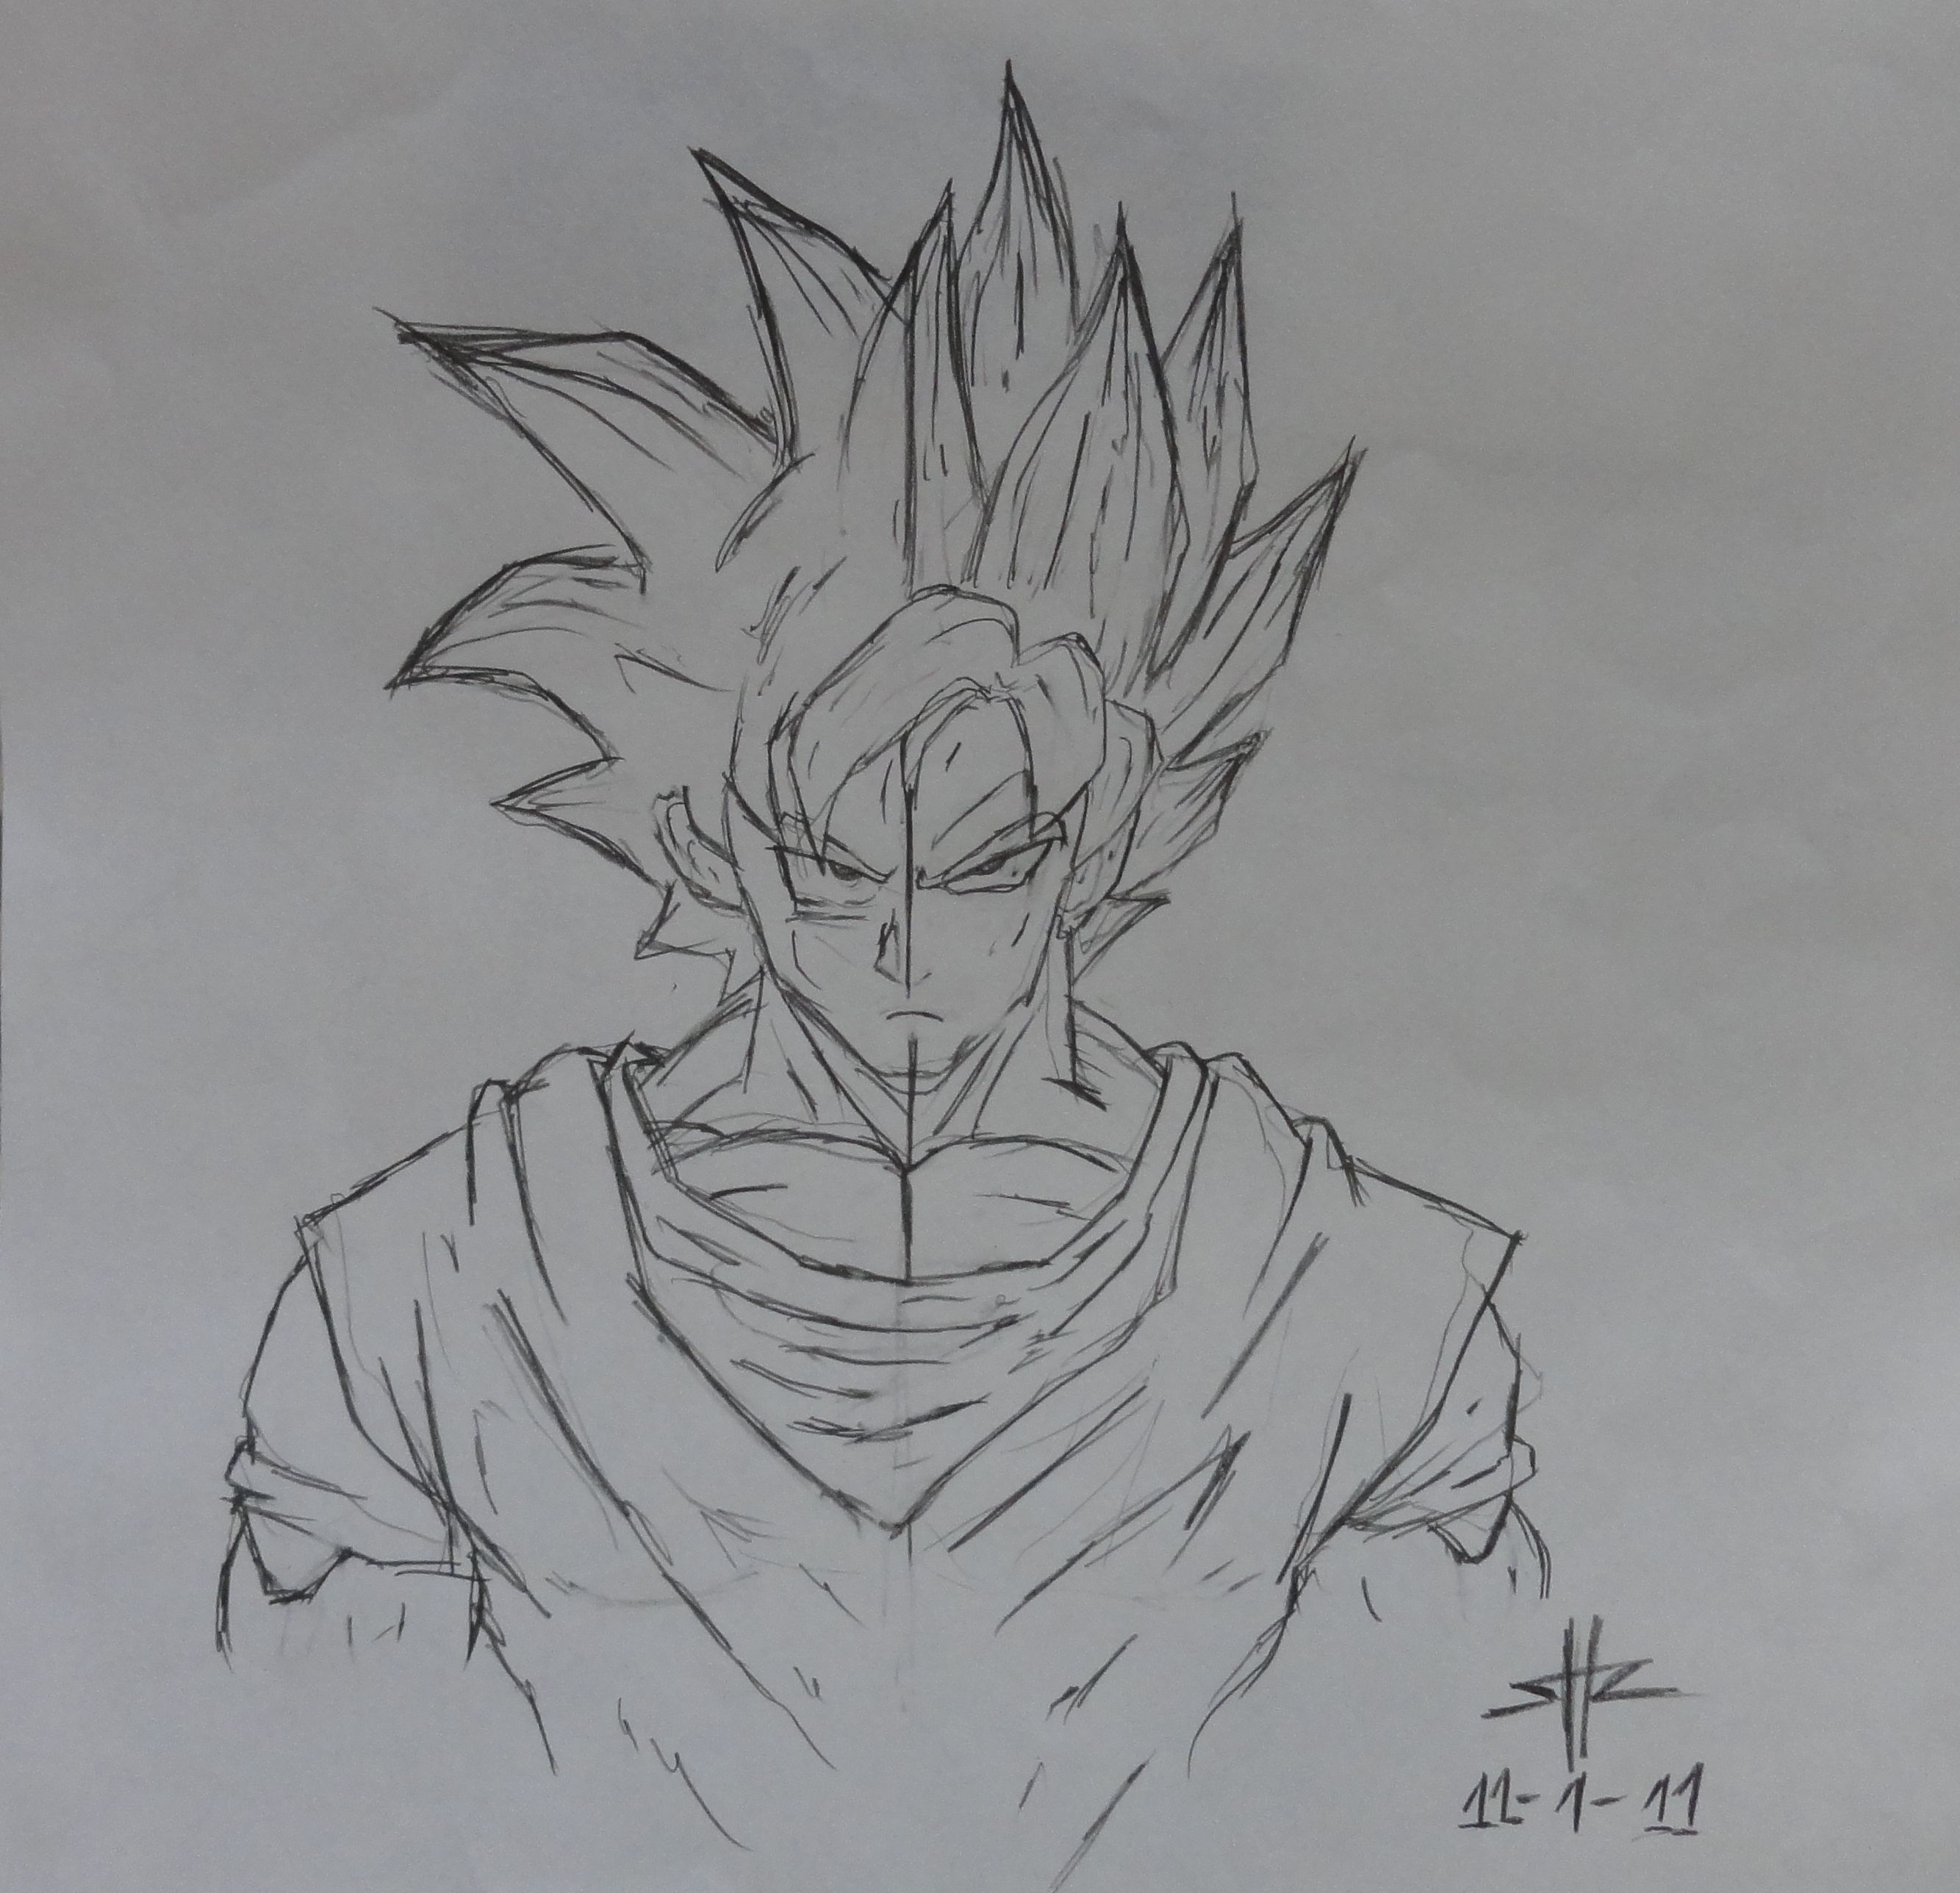 ssj3 goku drawing - Google Search | Projects to Try | Pinterest ...